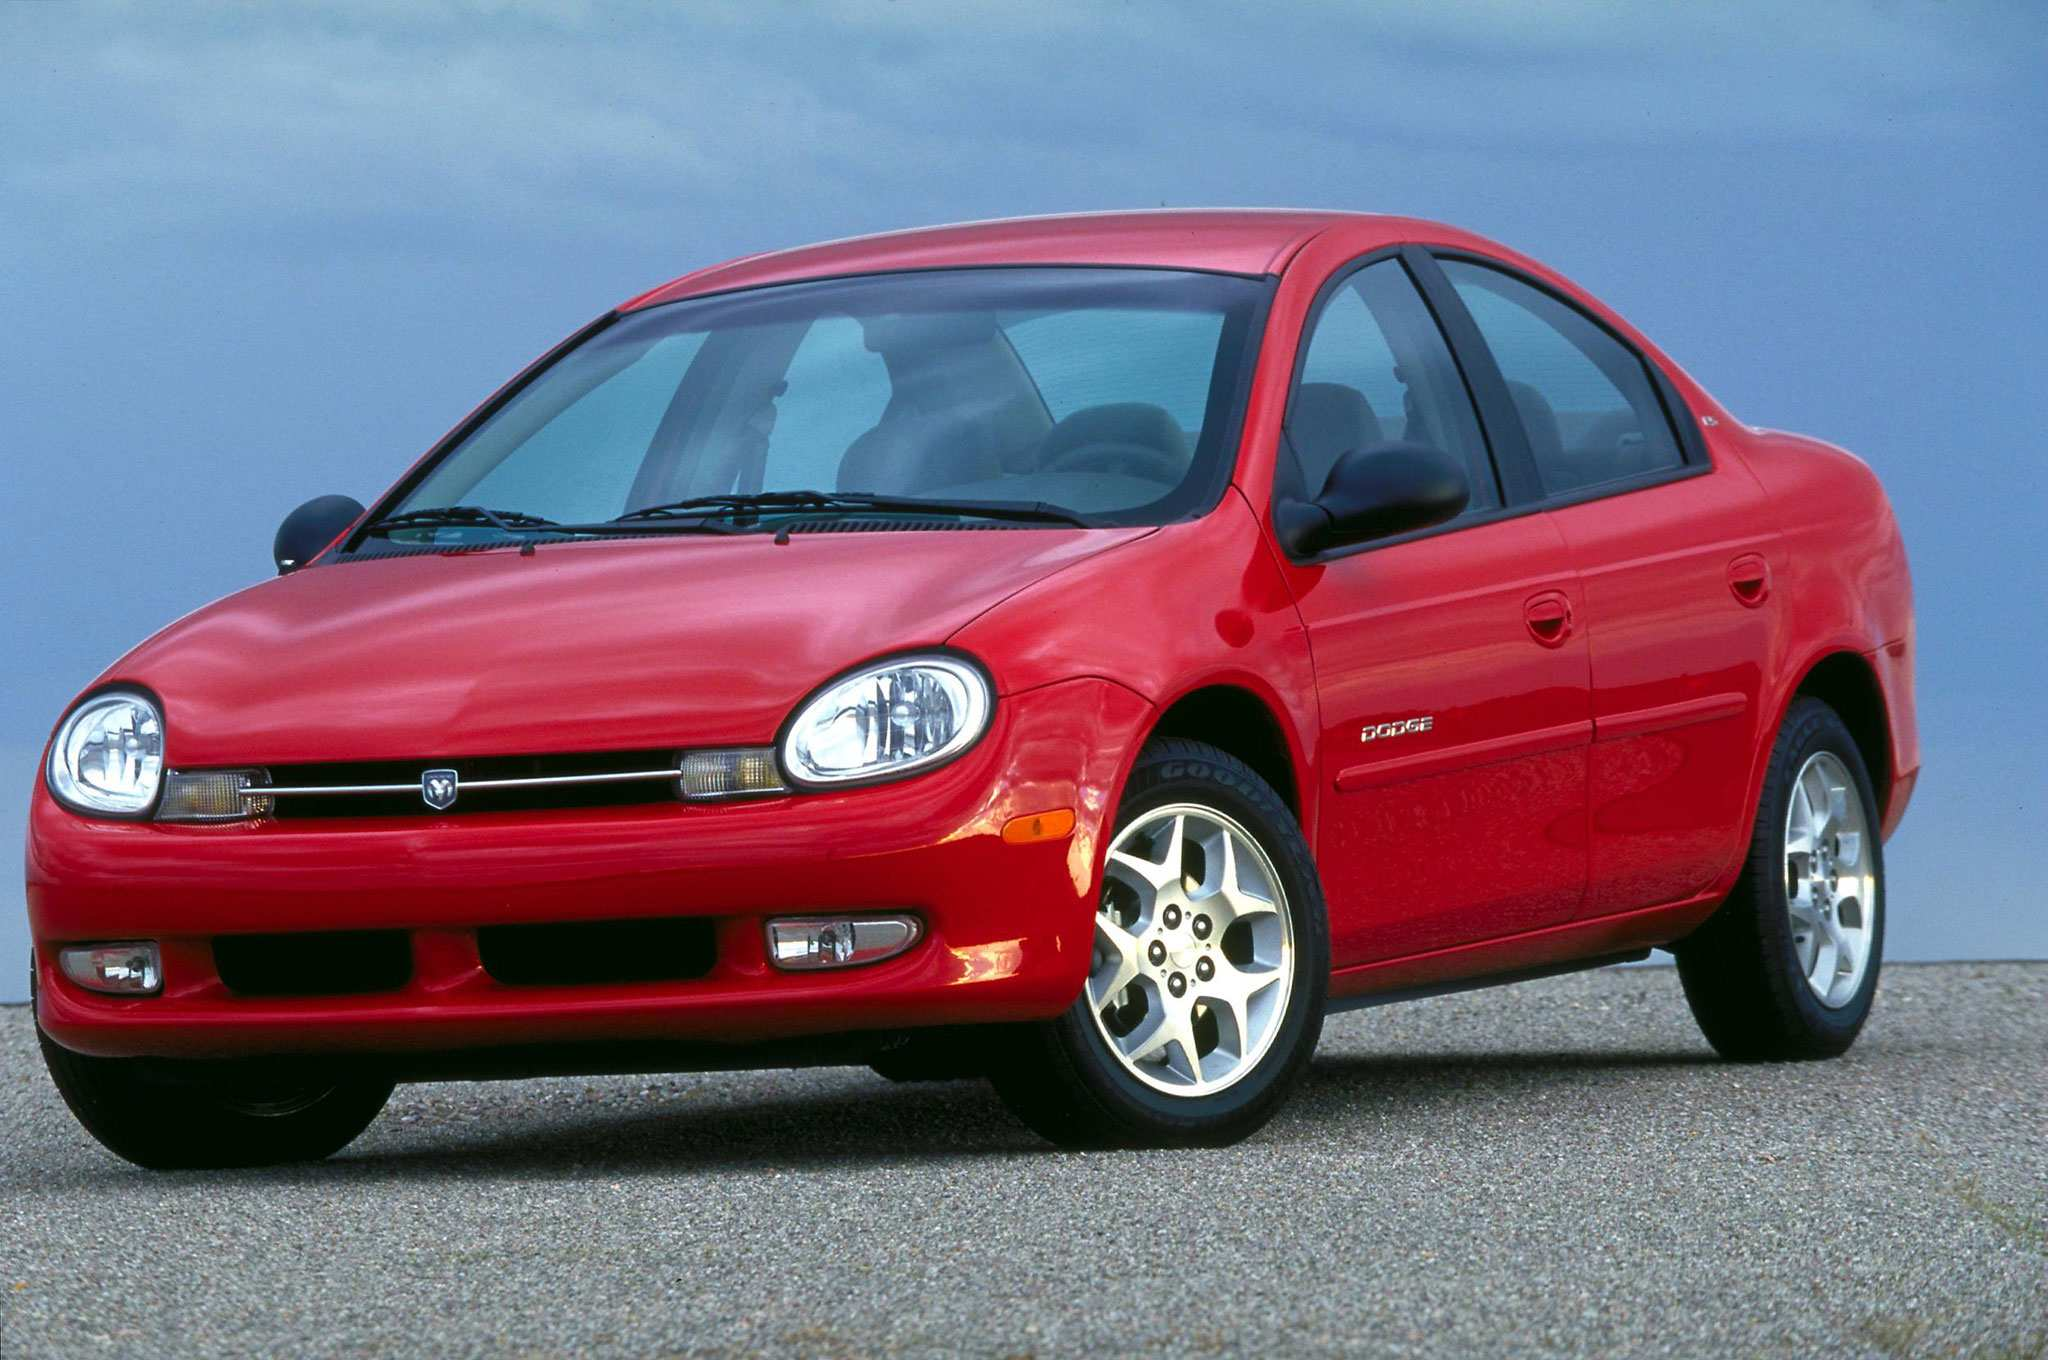 78 Concept of Dodge Neon 2020 Prices with Dodge Neon 2020